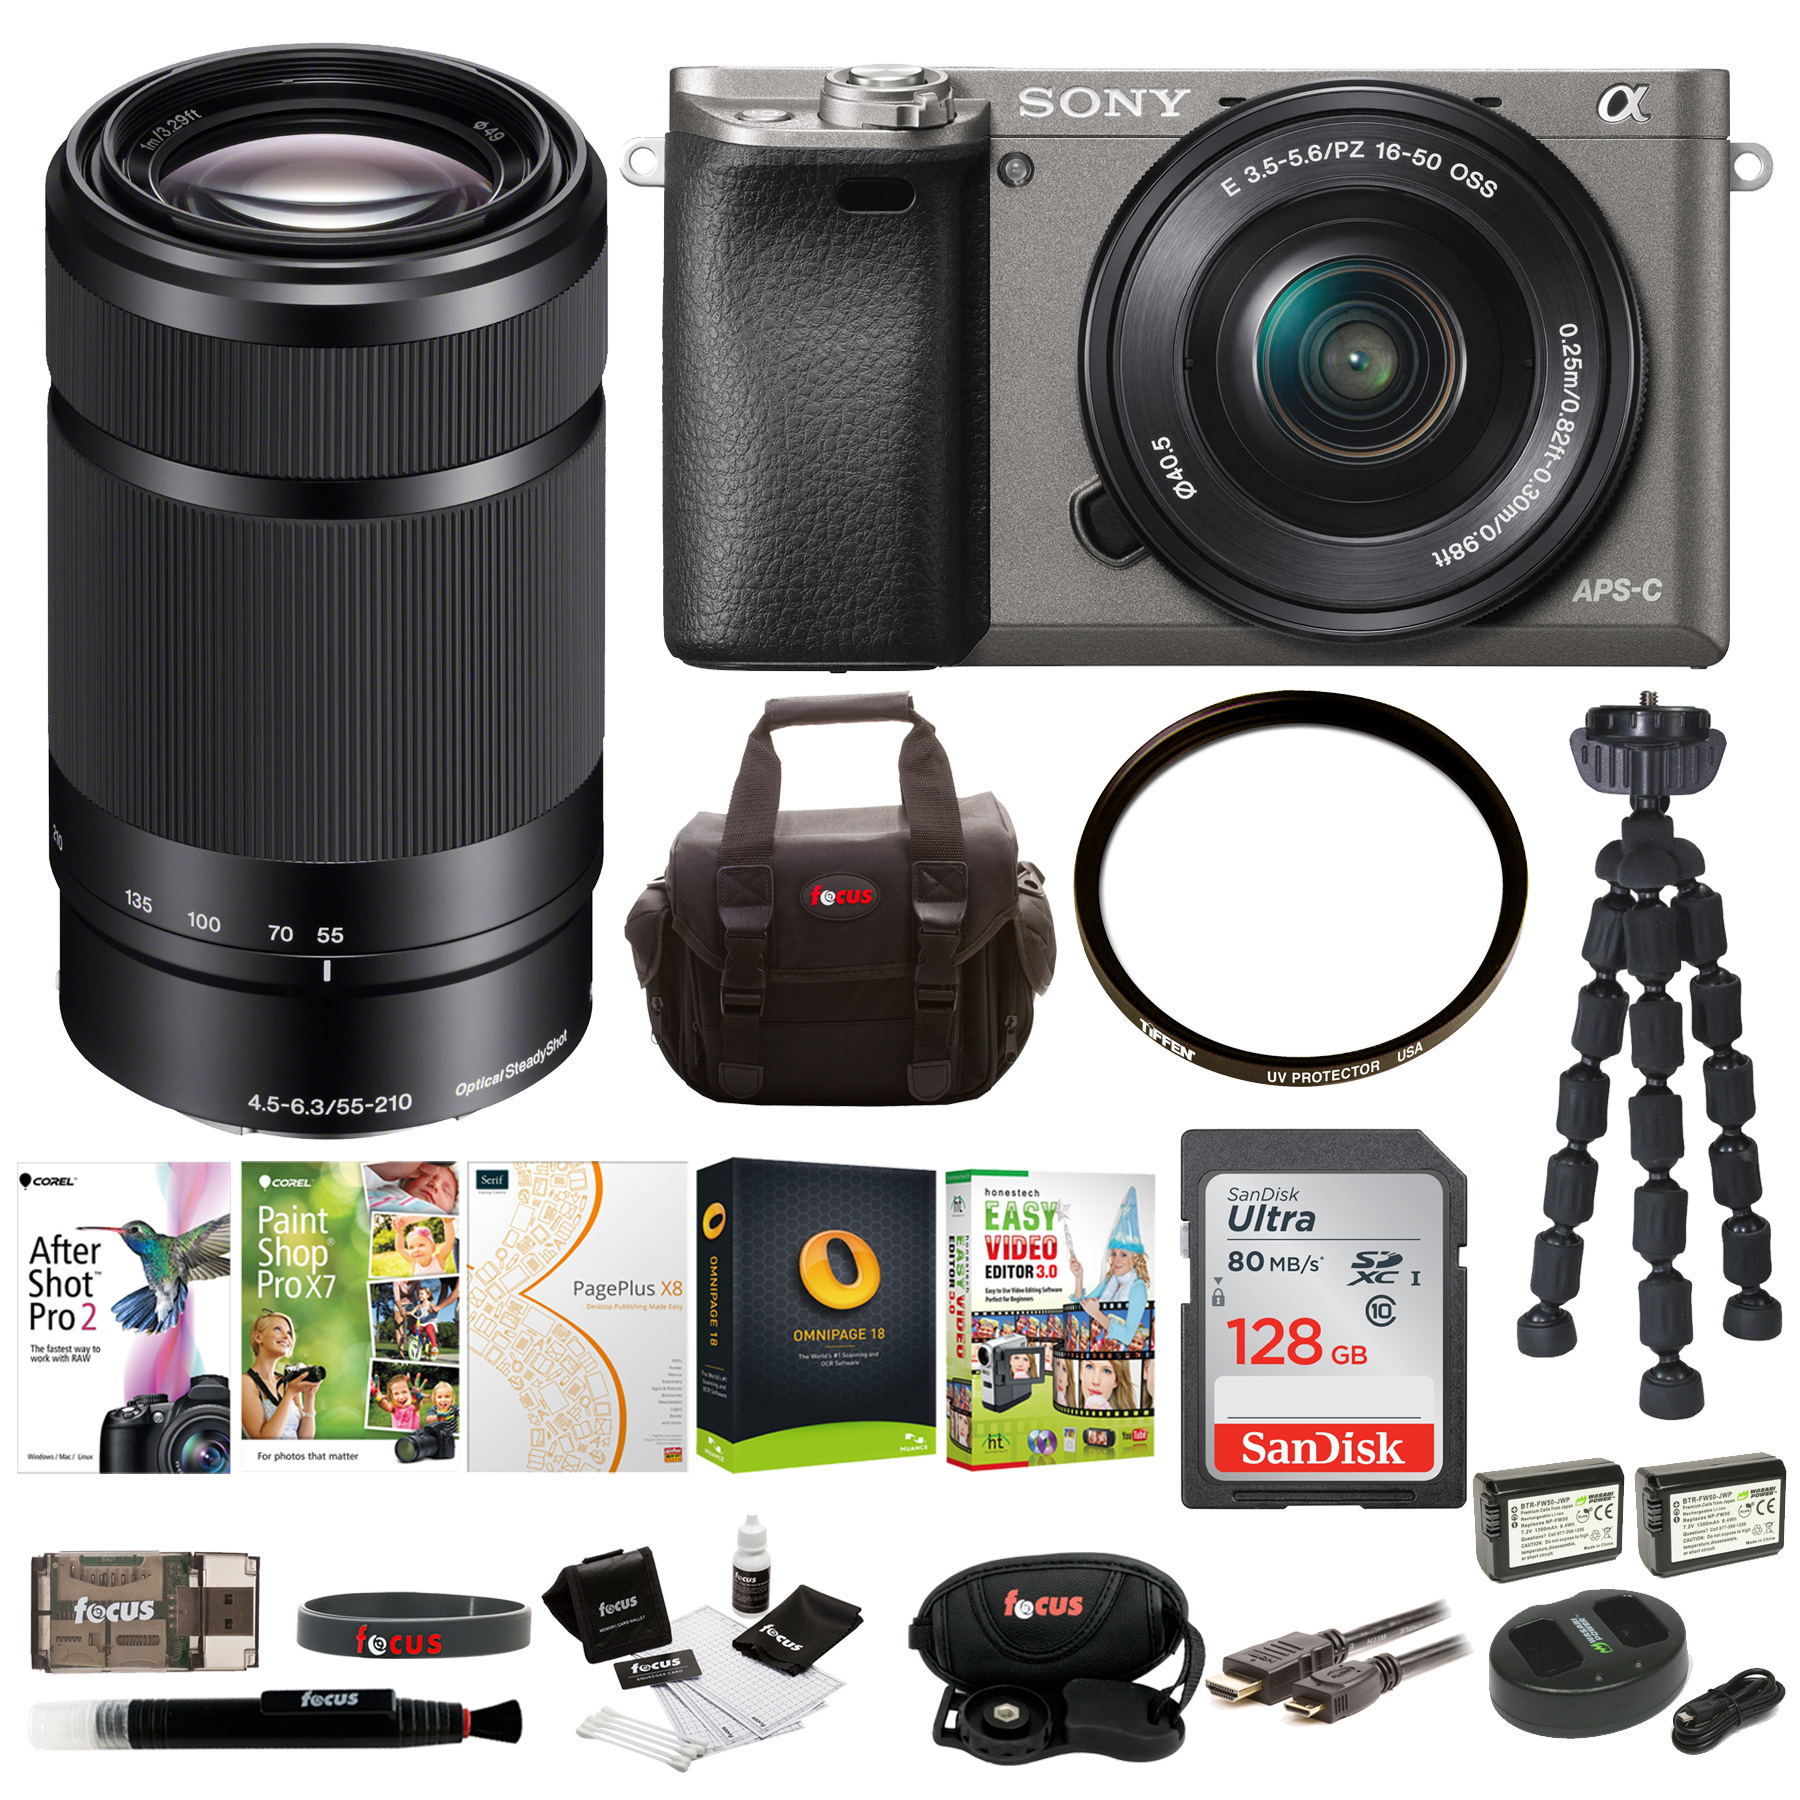 Sony Alpha a6000 Camera (Graphite) w/ 16-50mm & 55-210mm Lenses + 128GB Card + Software Suite + Accessory Bundle